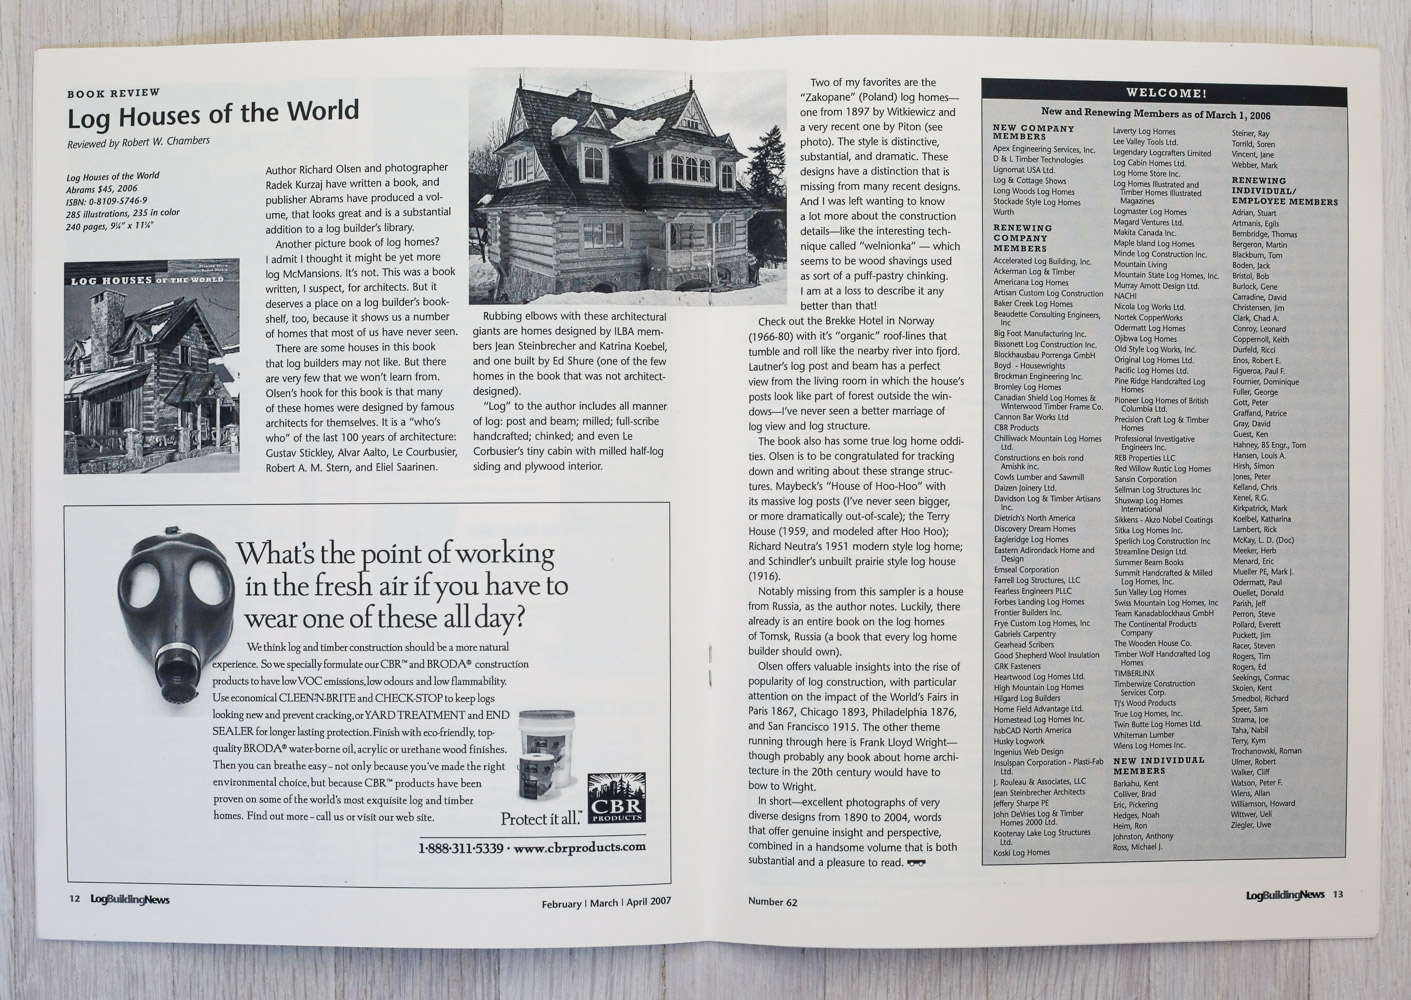 Log Houses of the World   reviewed by Robert Chambers in   Log Building News ,  Feb/Mar/Apr 2007.